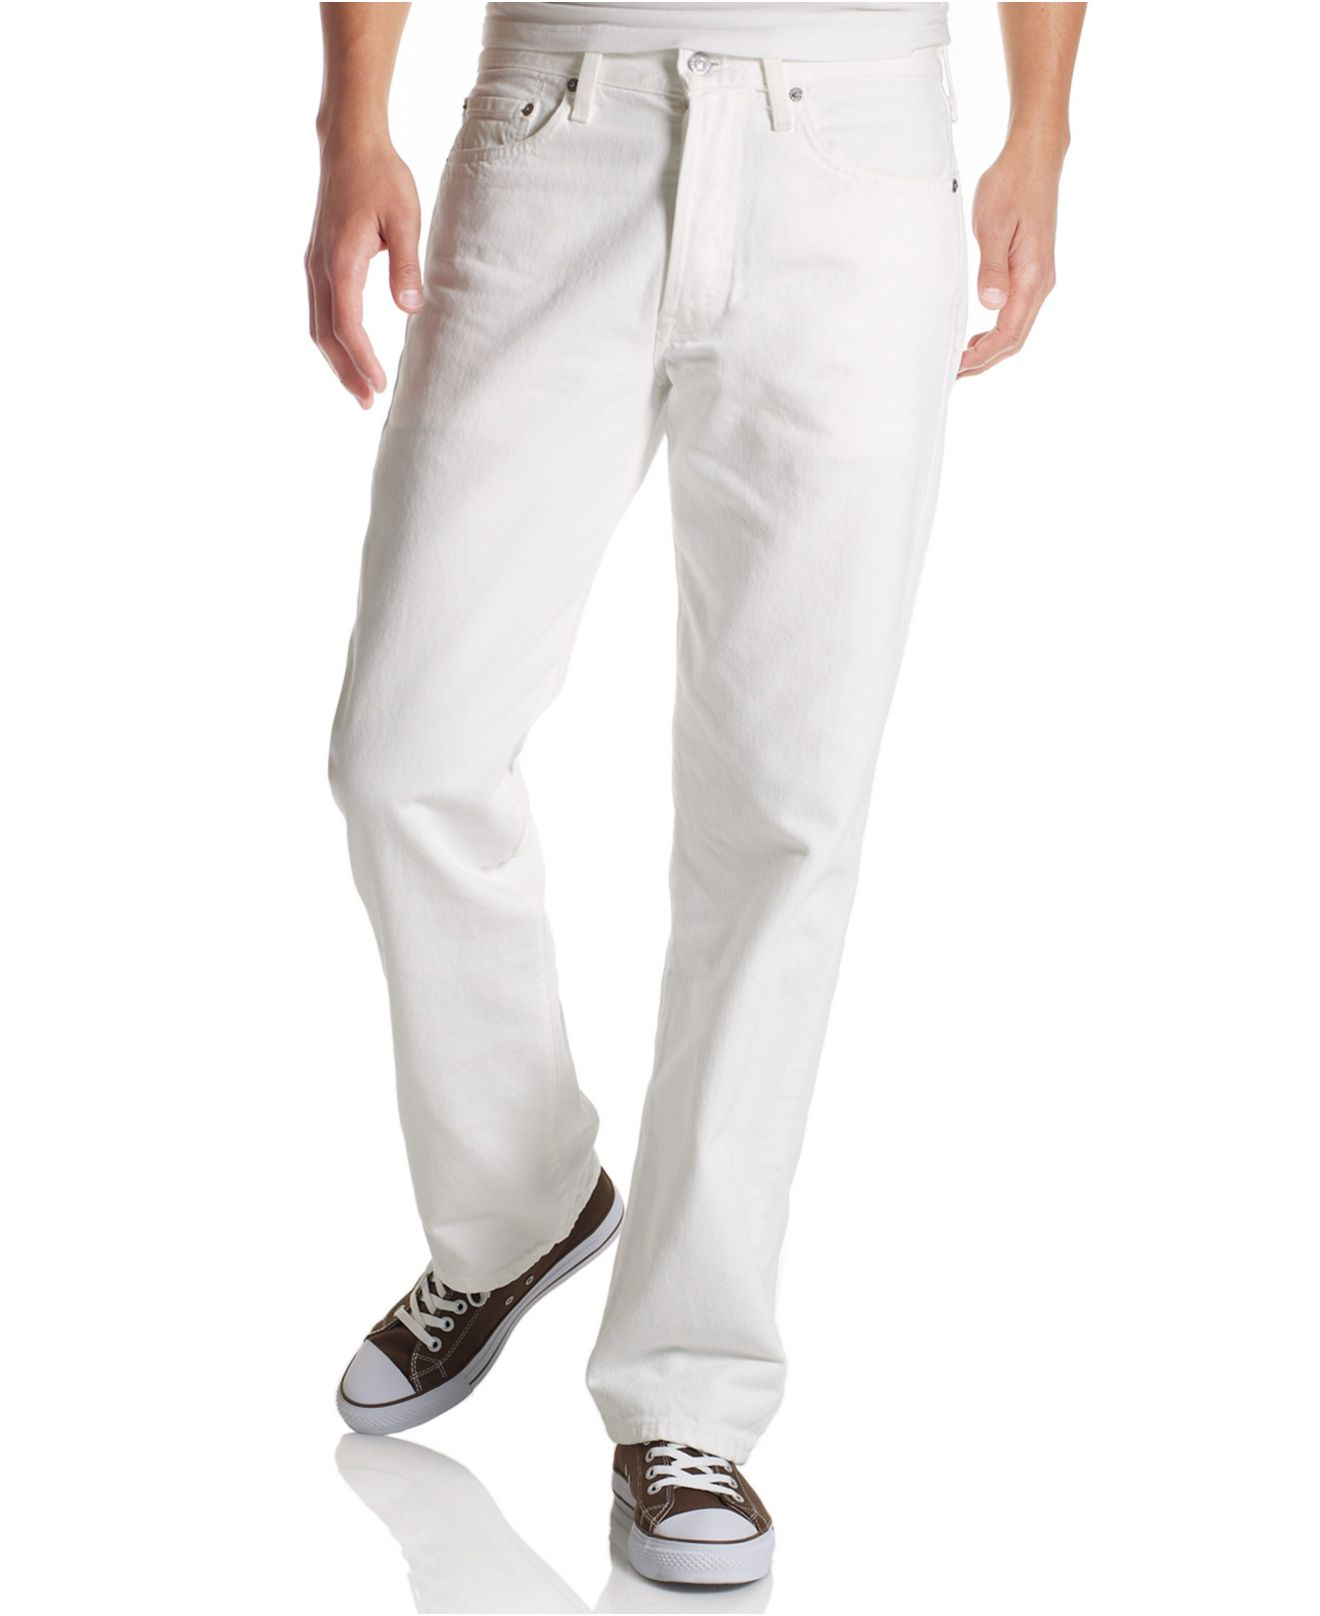 levis mens 501 originalfit jeans in white for men